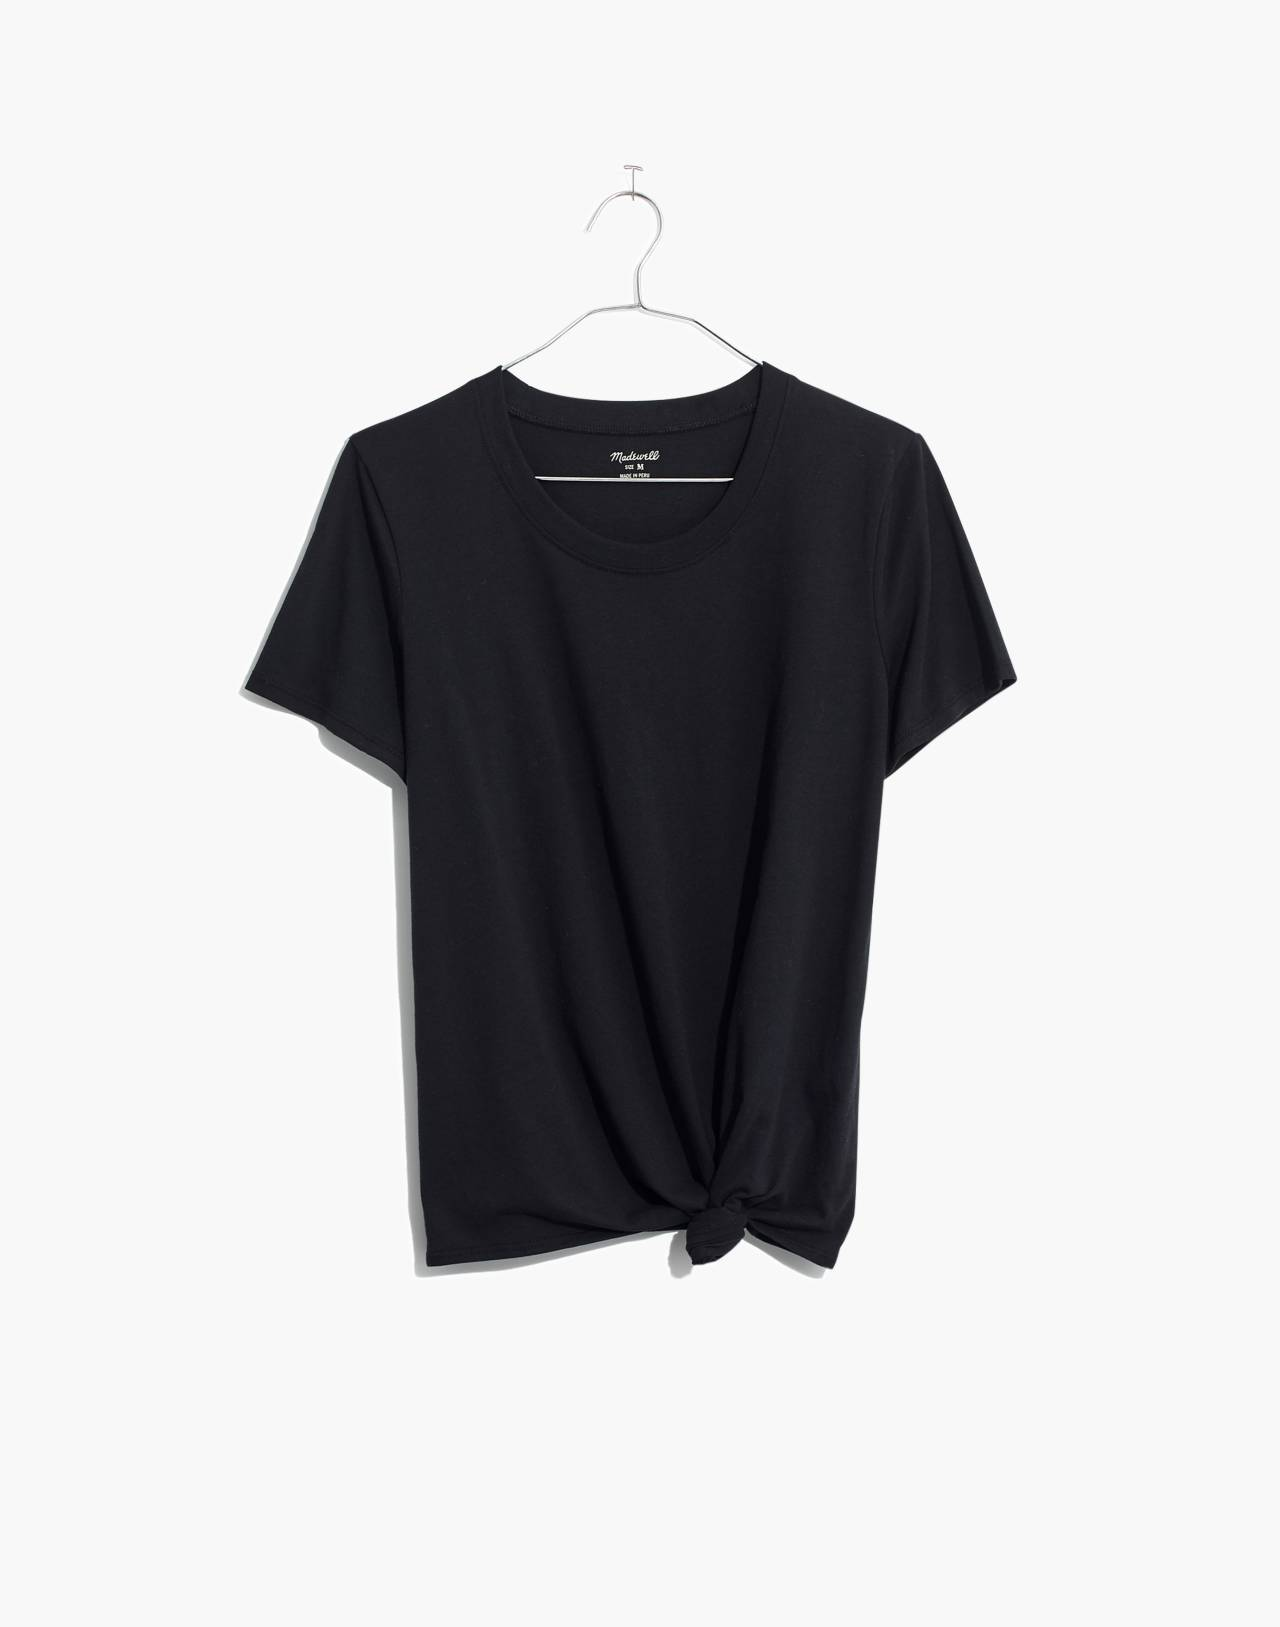 Knot-Front Tee in true black image 4